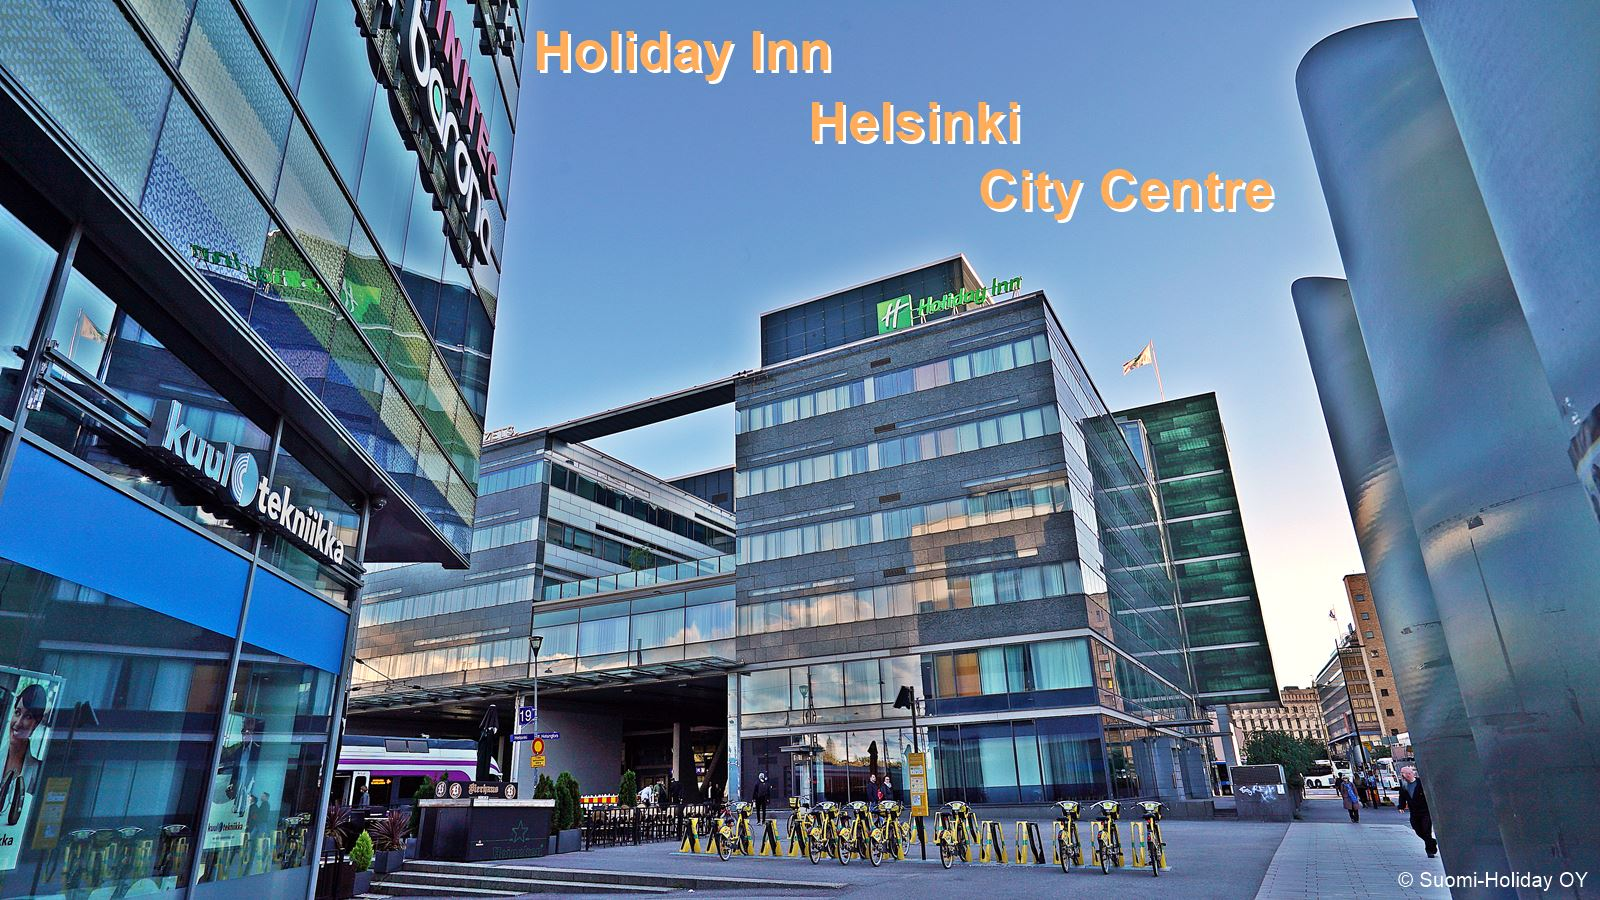 Holiday Inn Helsinki City Centre Hotel very close to Central station